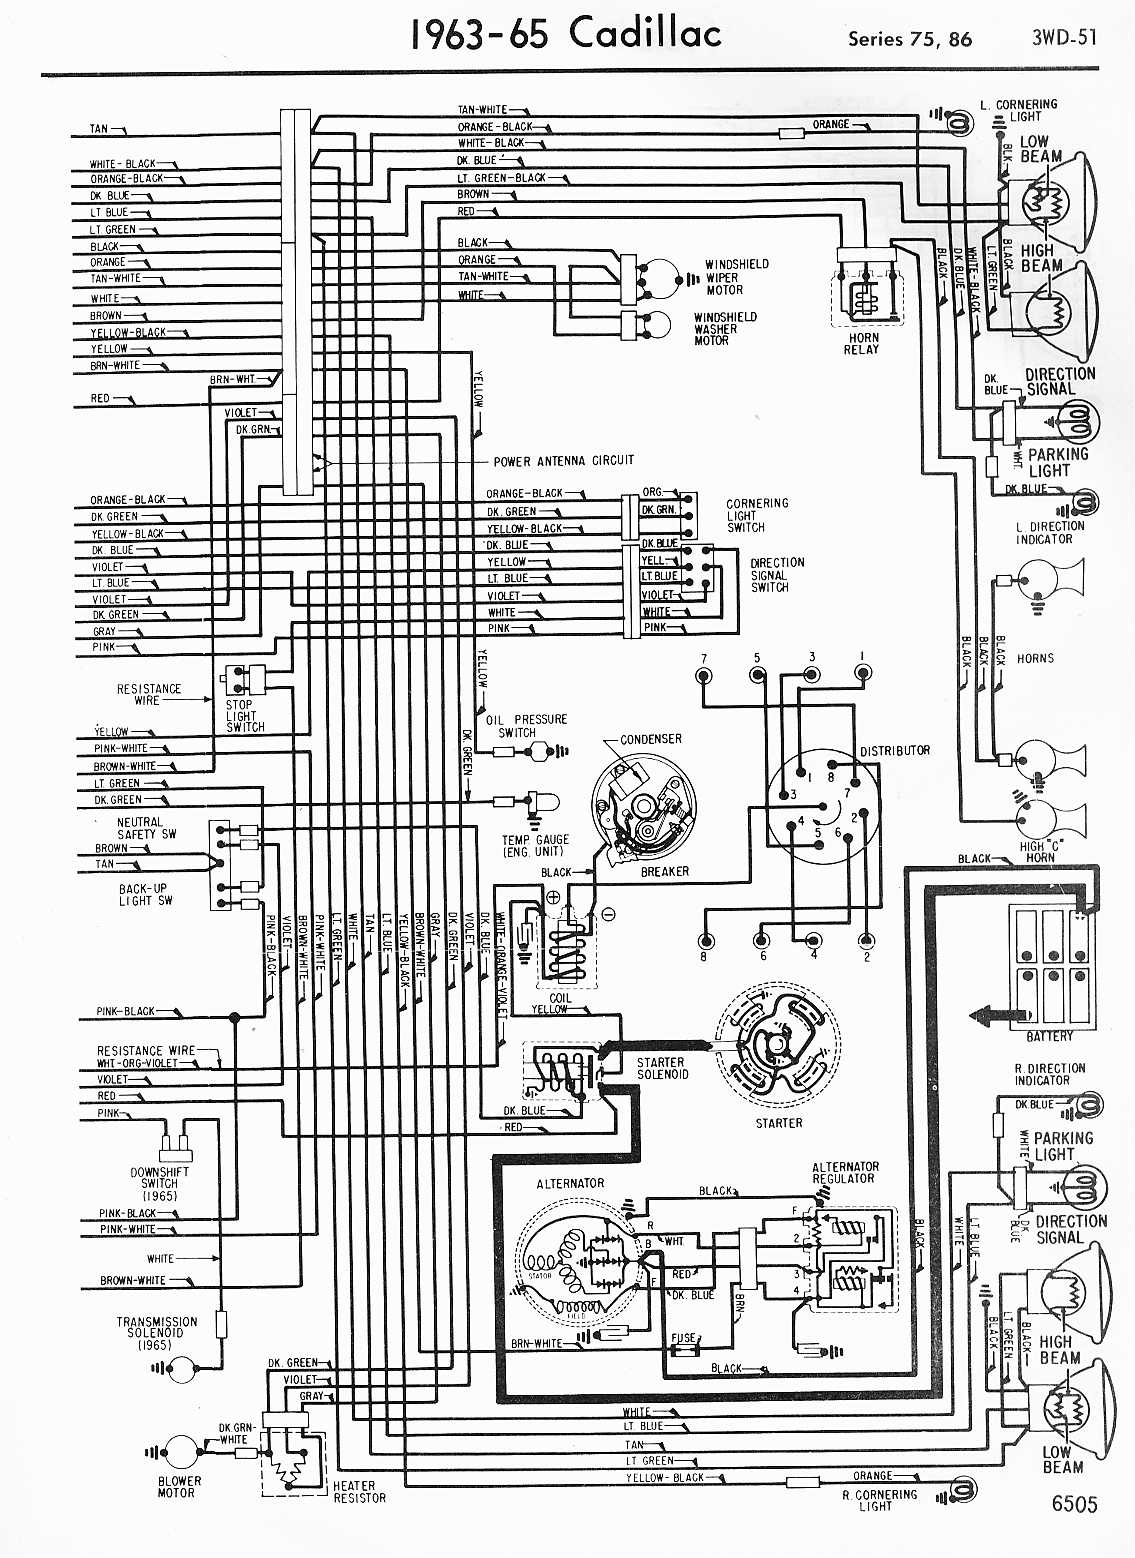 1998 Cadillac Eldorado Electrical Schematic Wiring Diagram And 1995 Fuse Schema Online Rh 9 1 5 Travelmate Nz De 1999 Sport